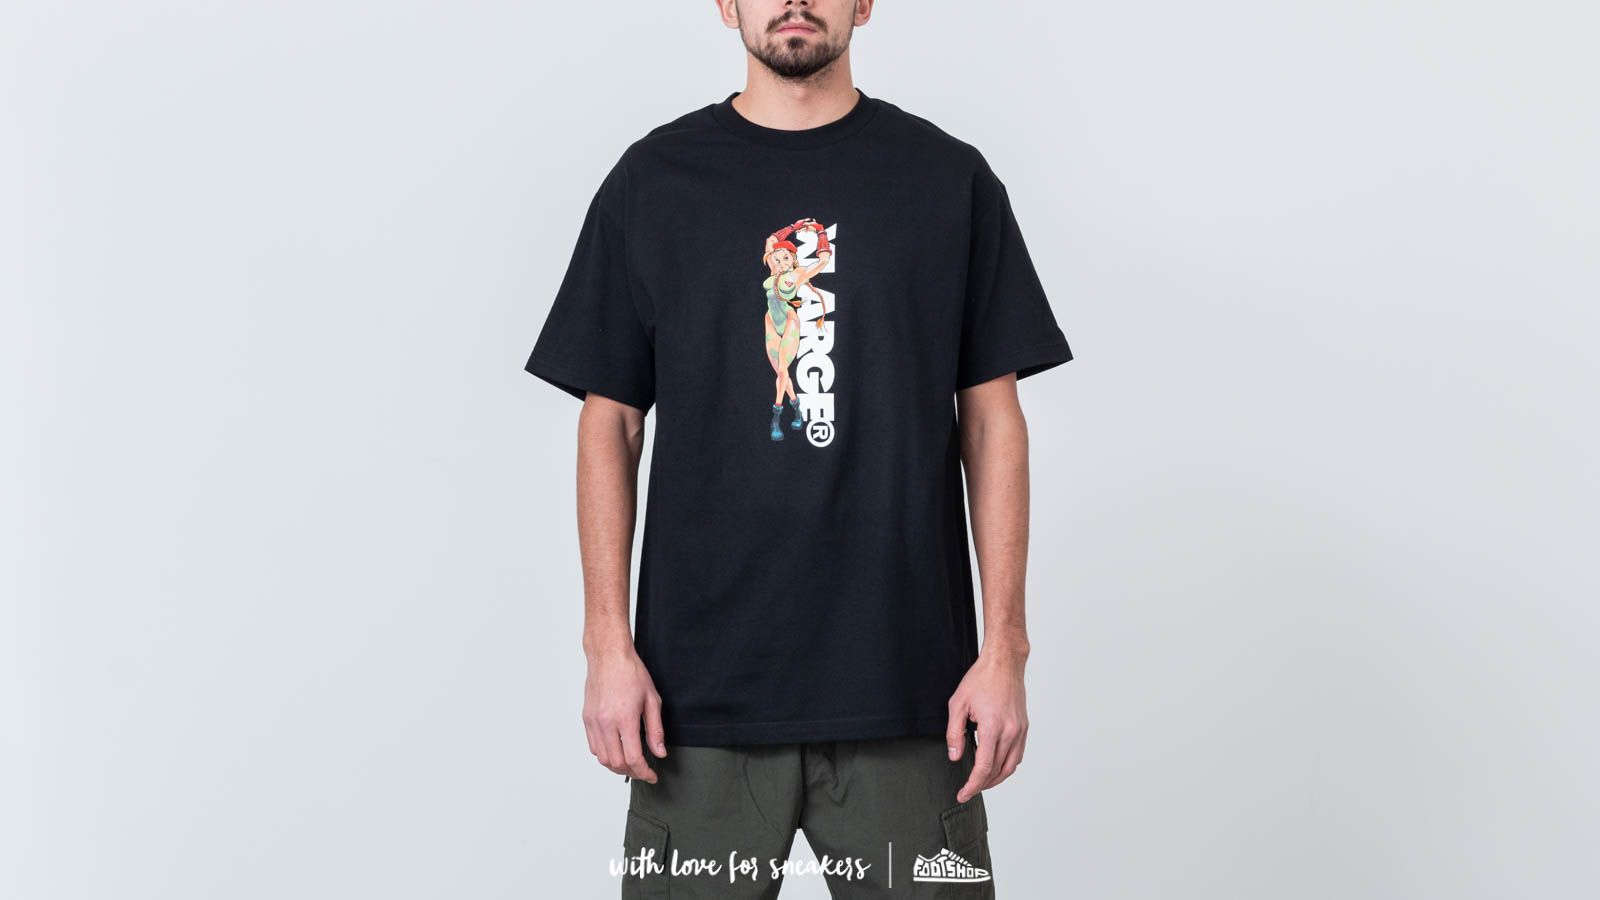 XLARGE Clothing x Streetfighter Cammy Shortsleeves Tee